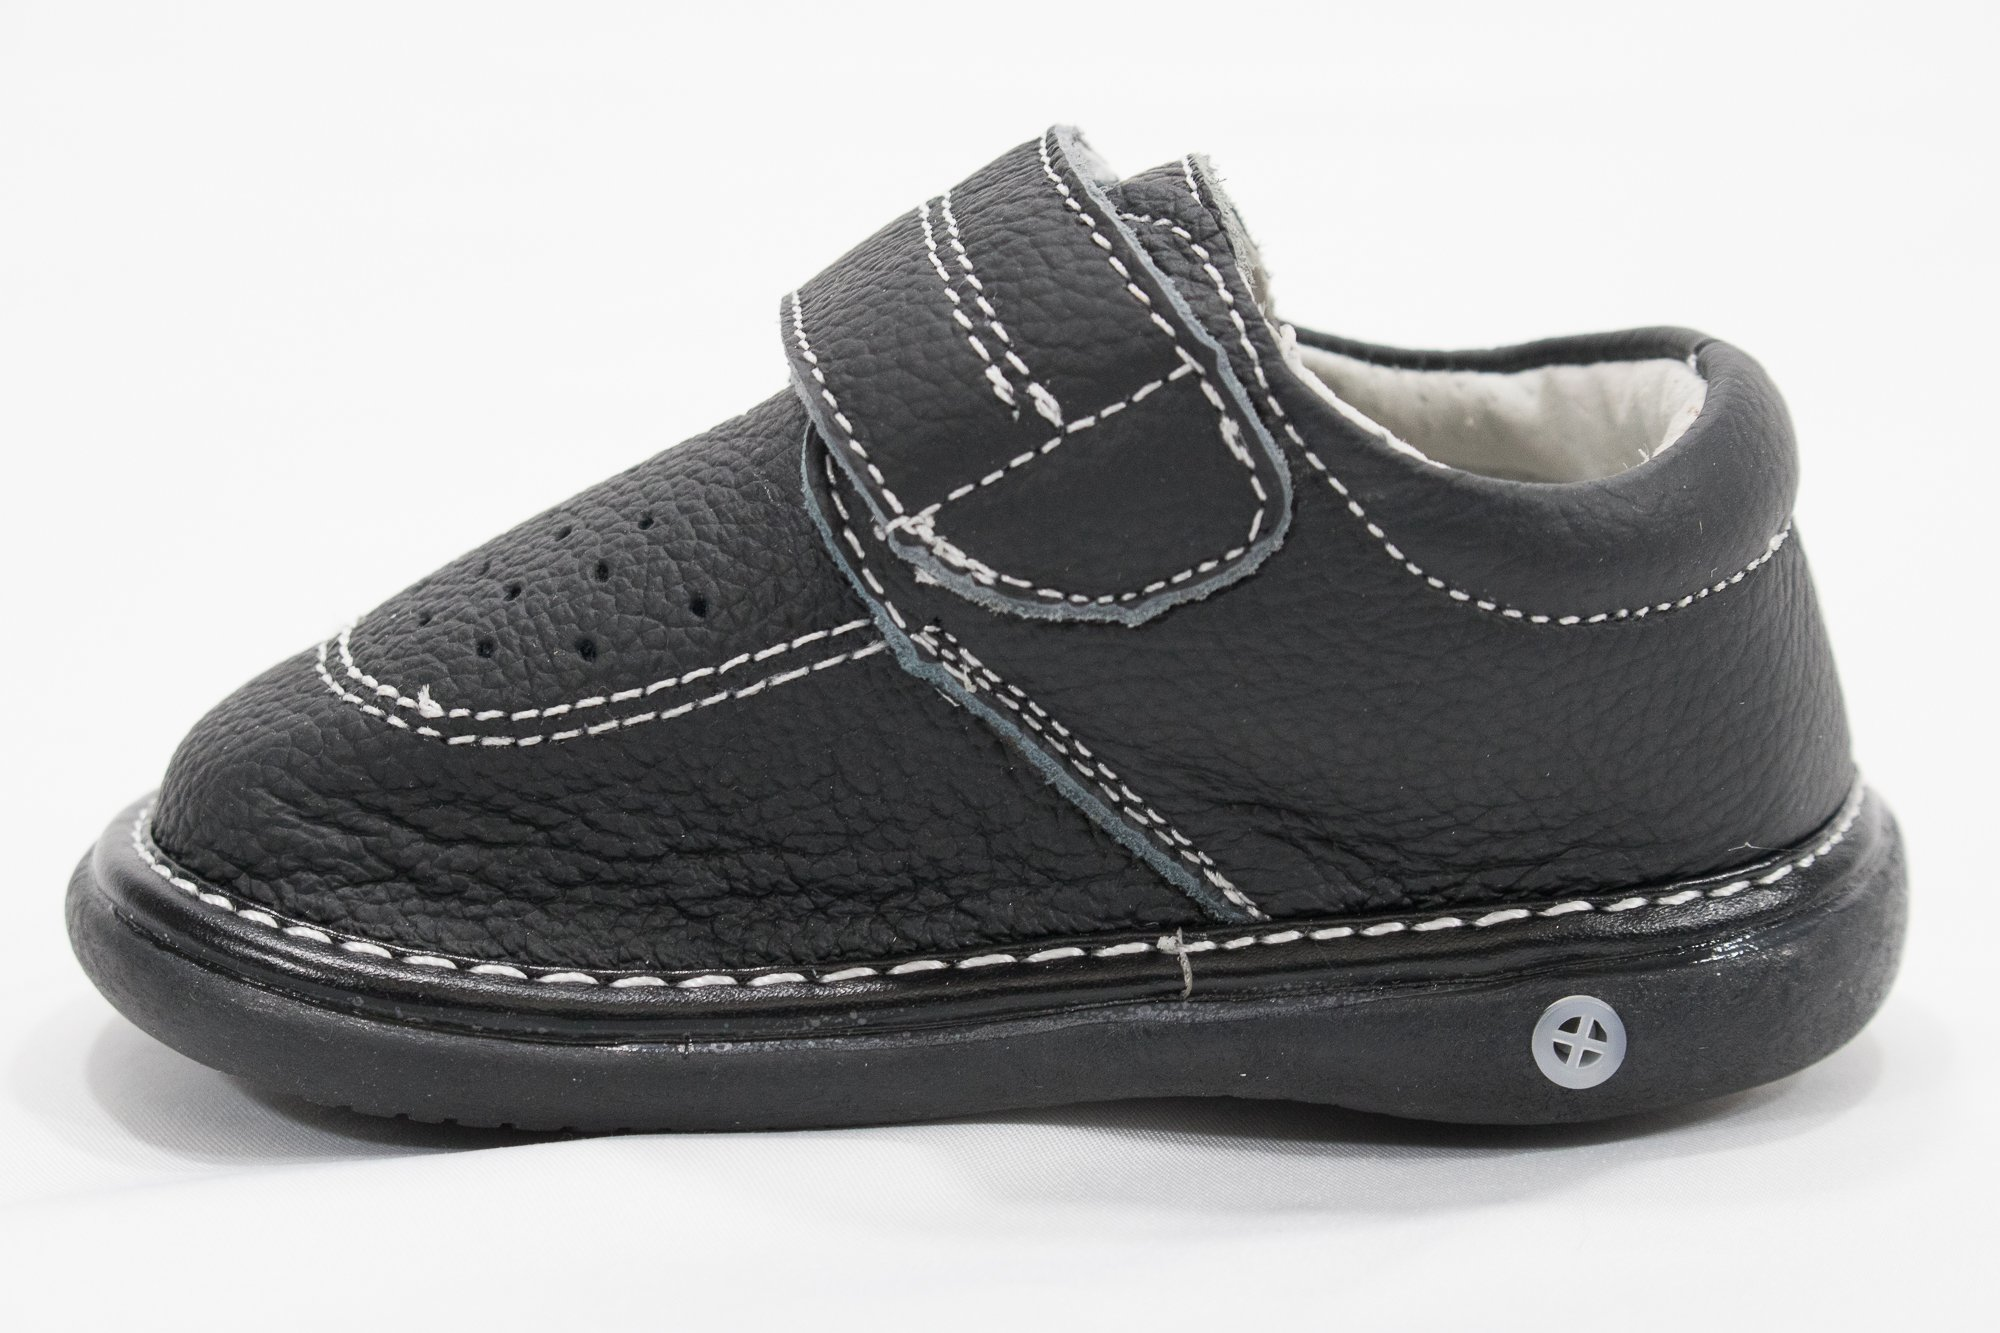 Anderson Baby Care LLC Squeaky Shoes for Toddler Boys (4T, Black Loafer) by Anderson Baby Care LLC (Image #6)